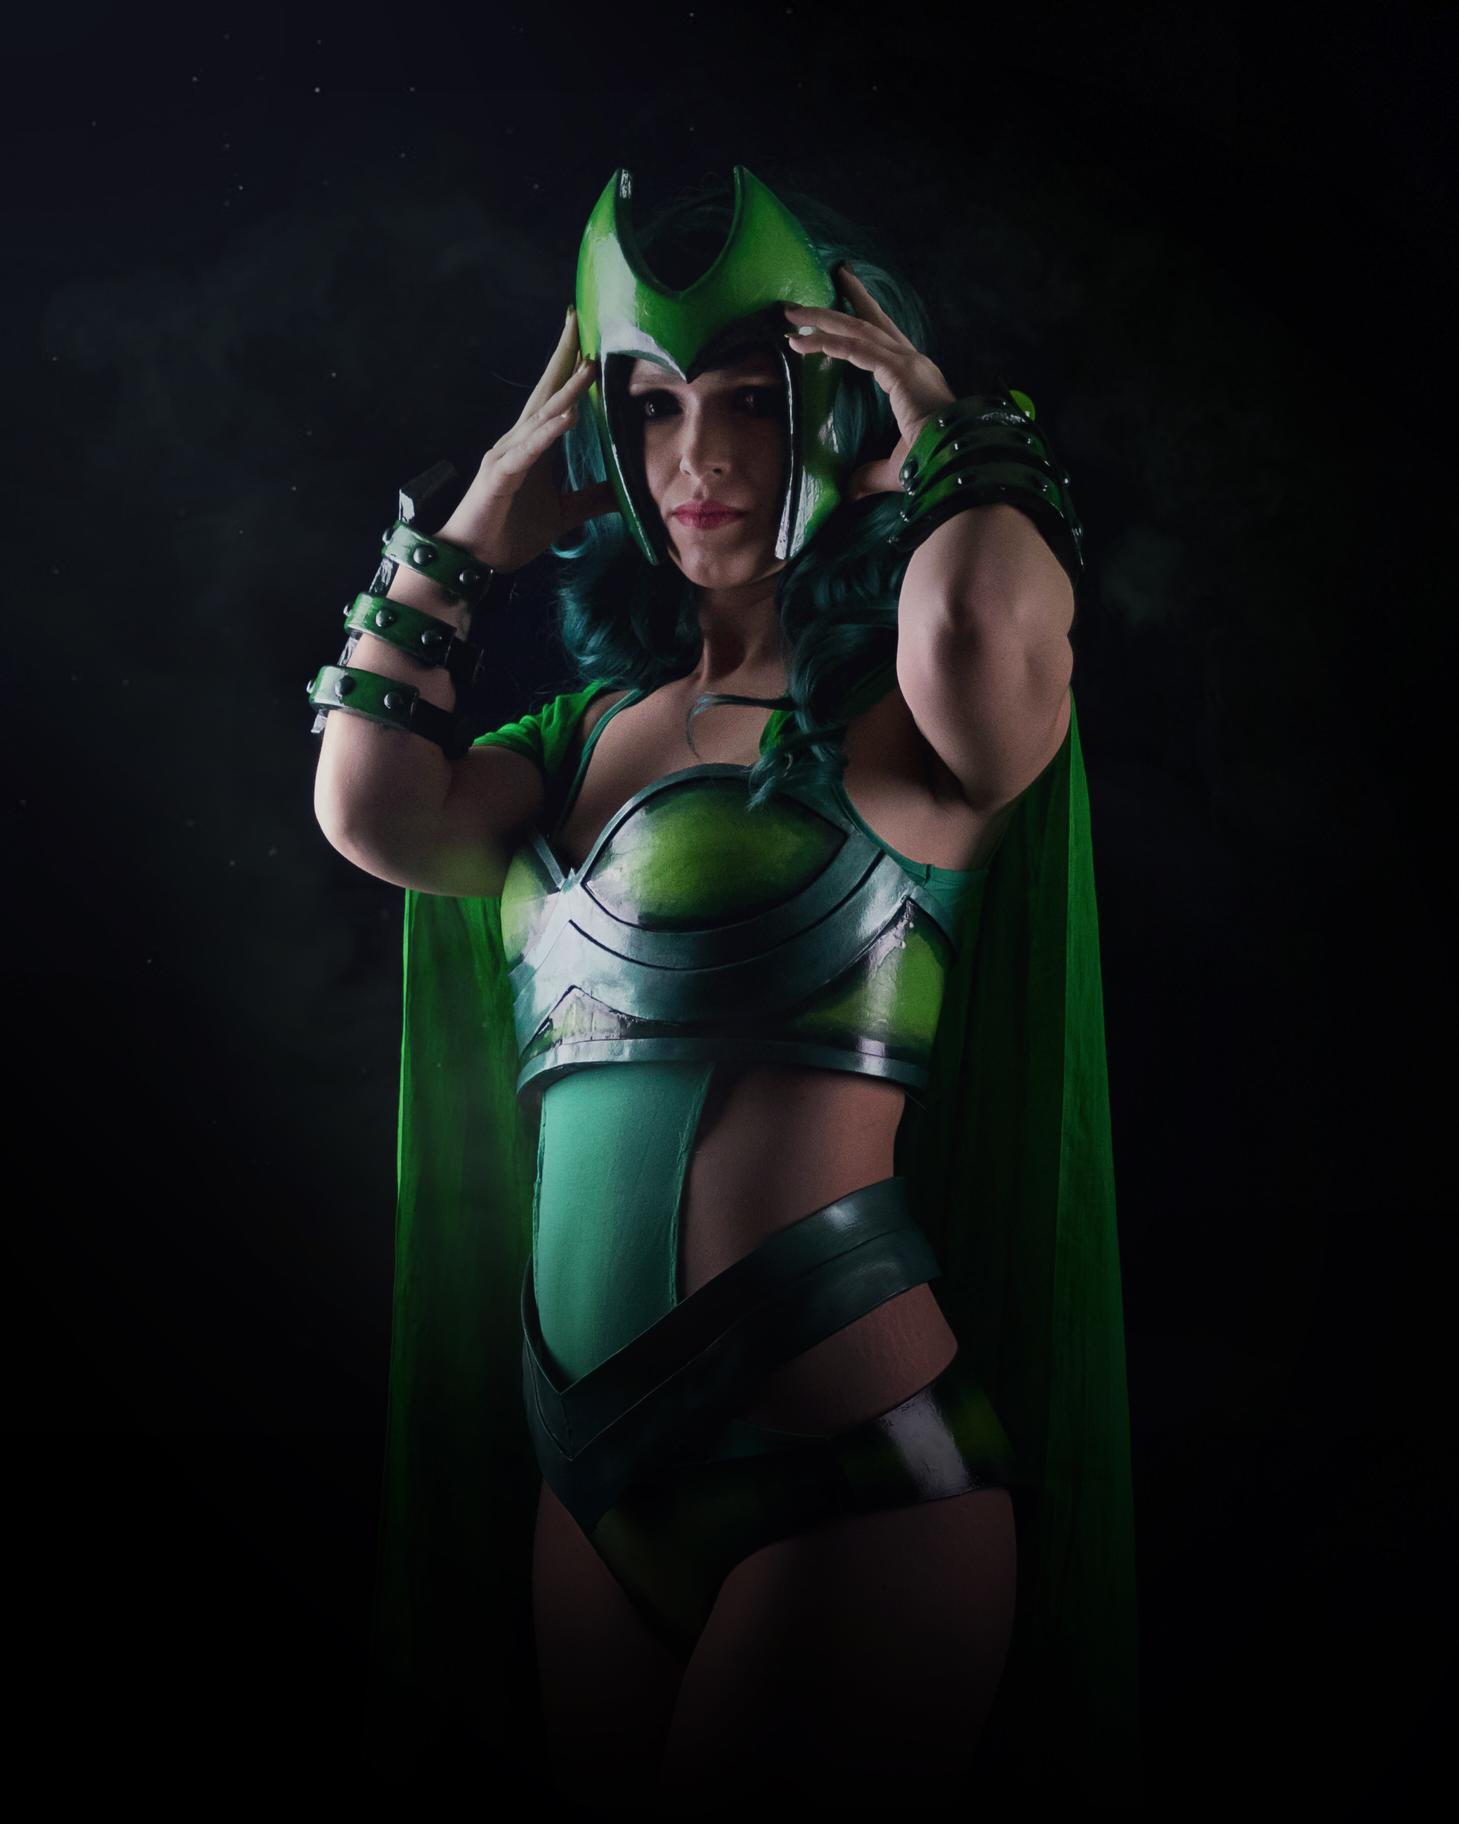 Amy Munro AKA Erriaa as Polaris